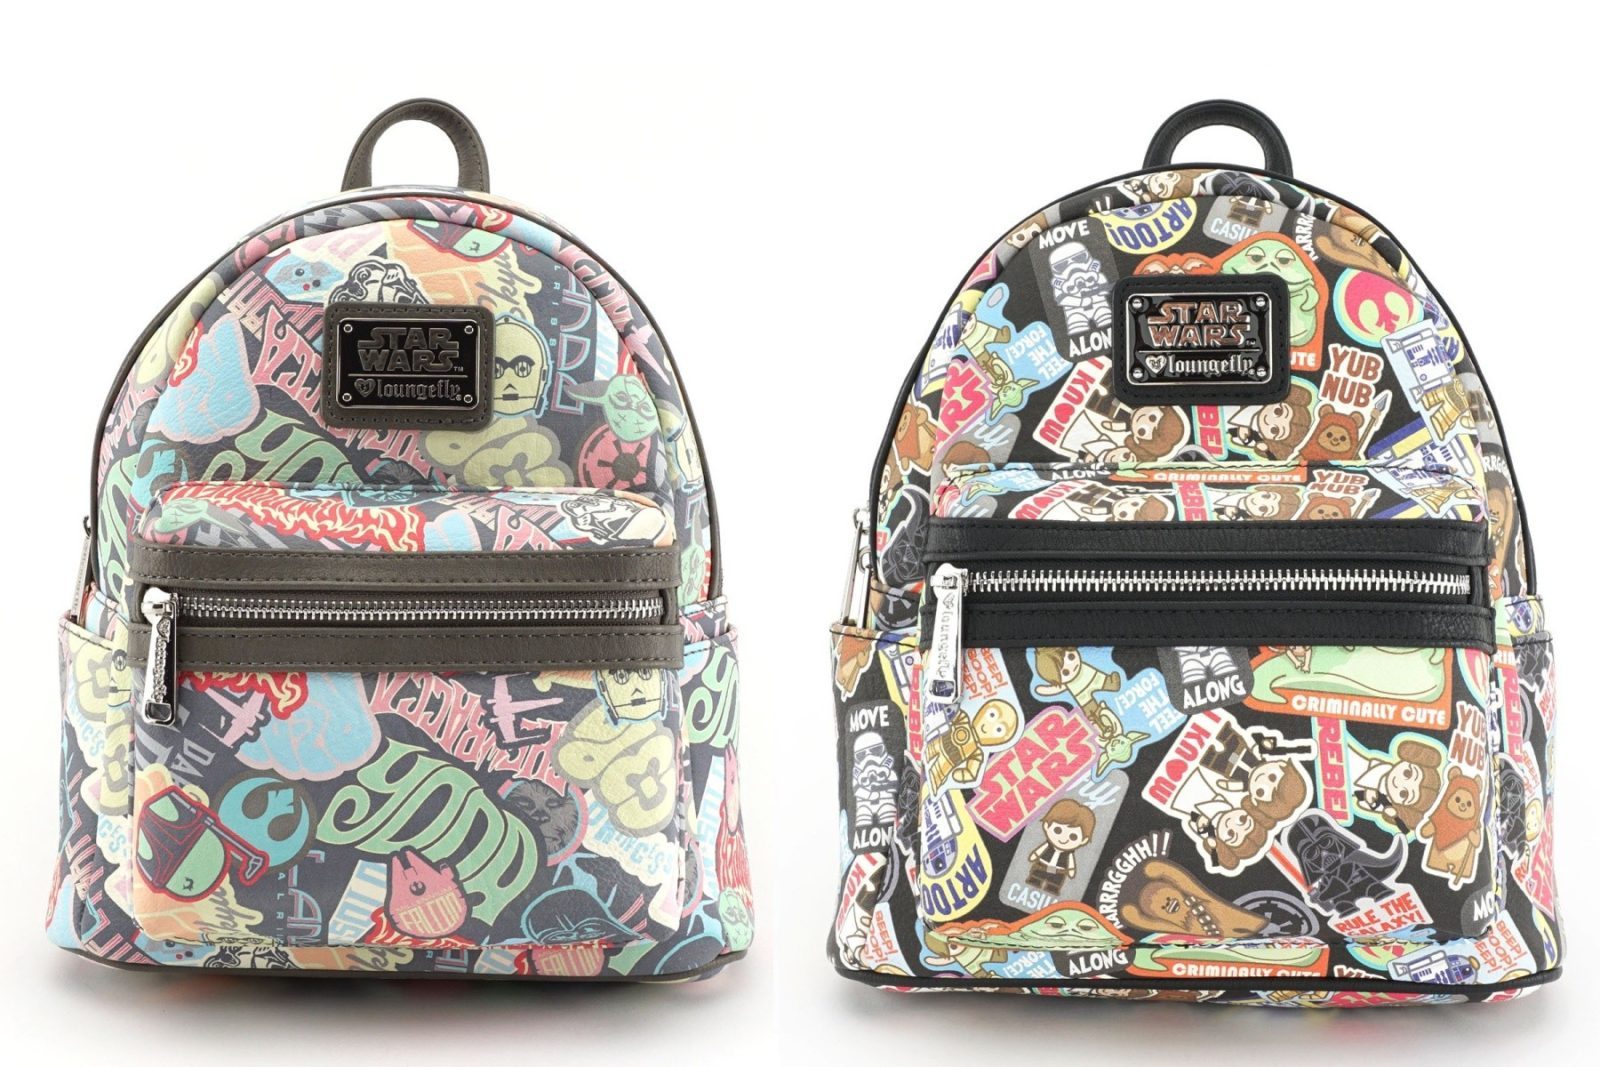 New Loungefly Star Wars Mini Backpacks